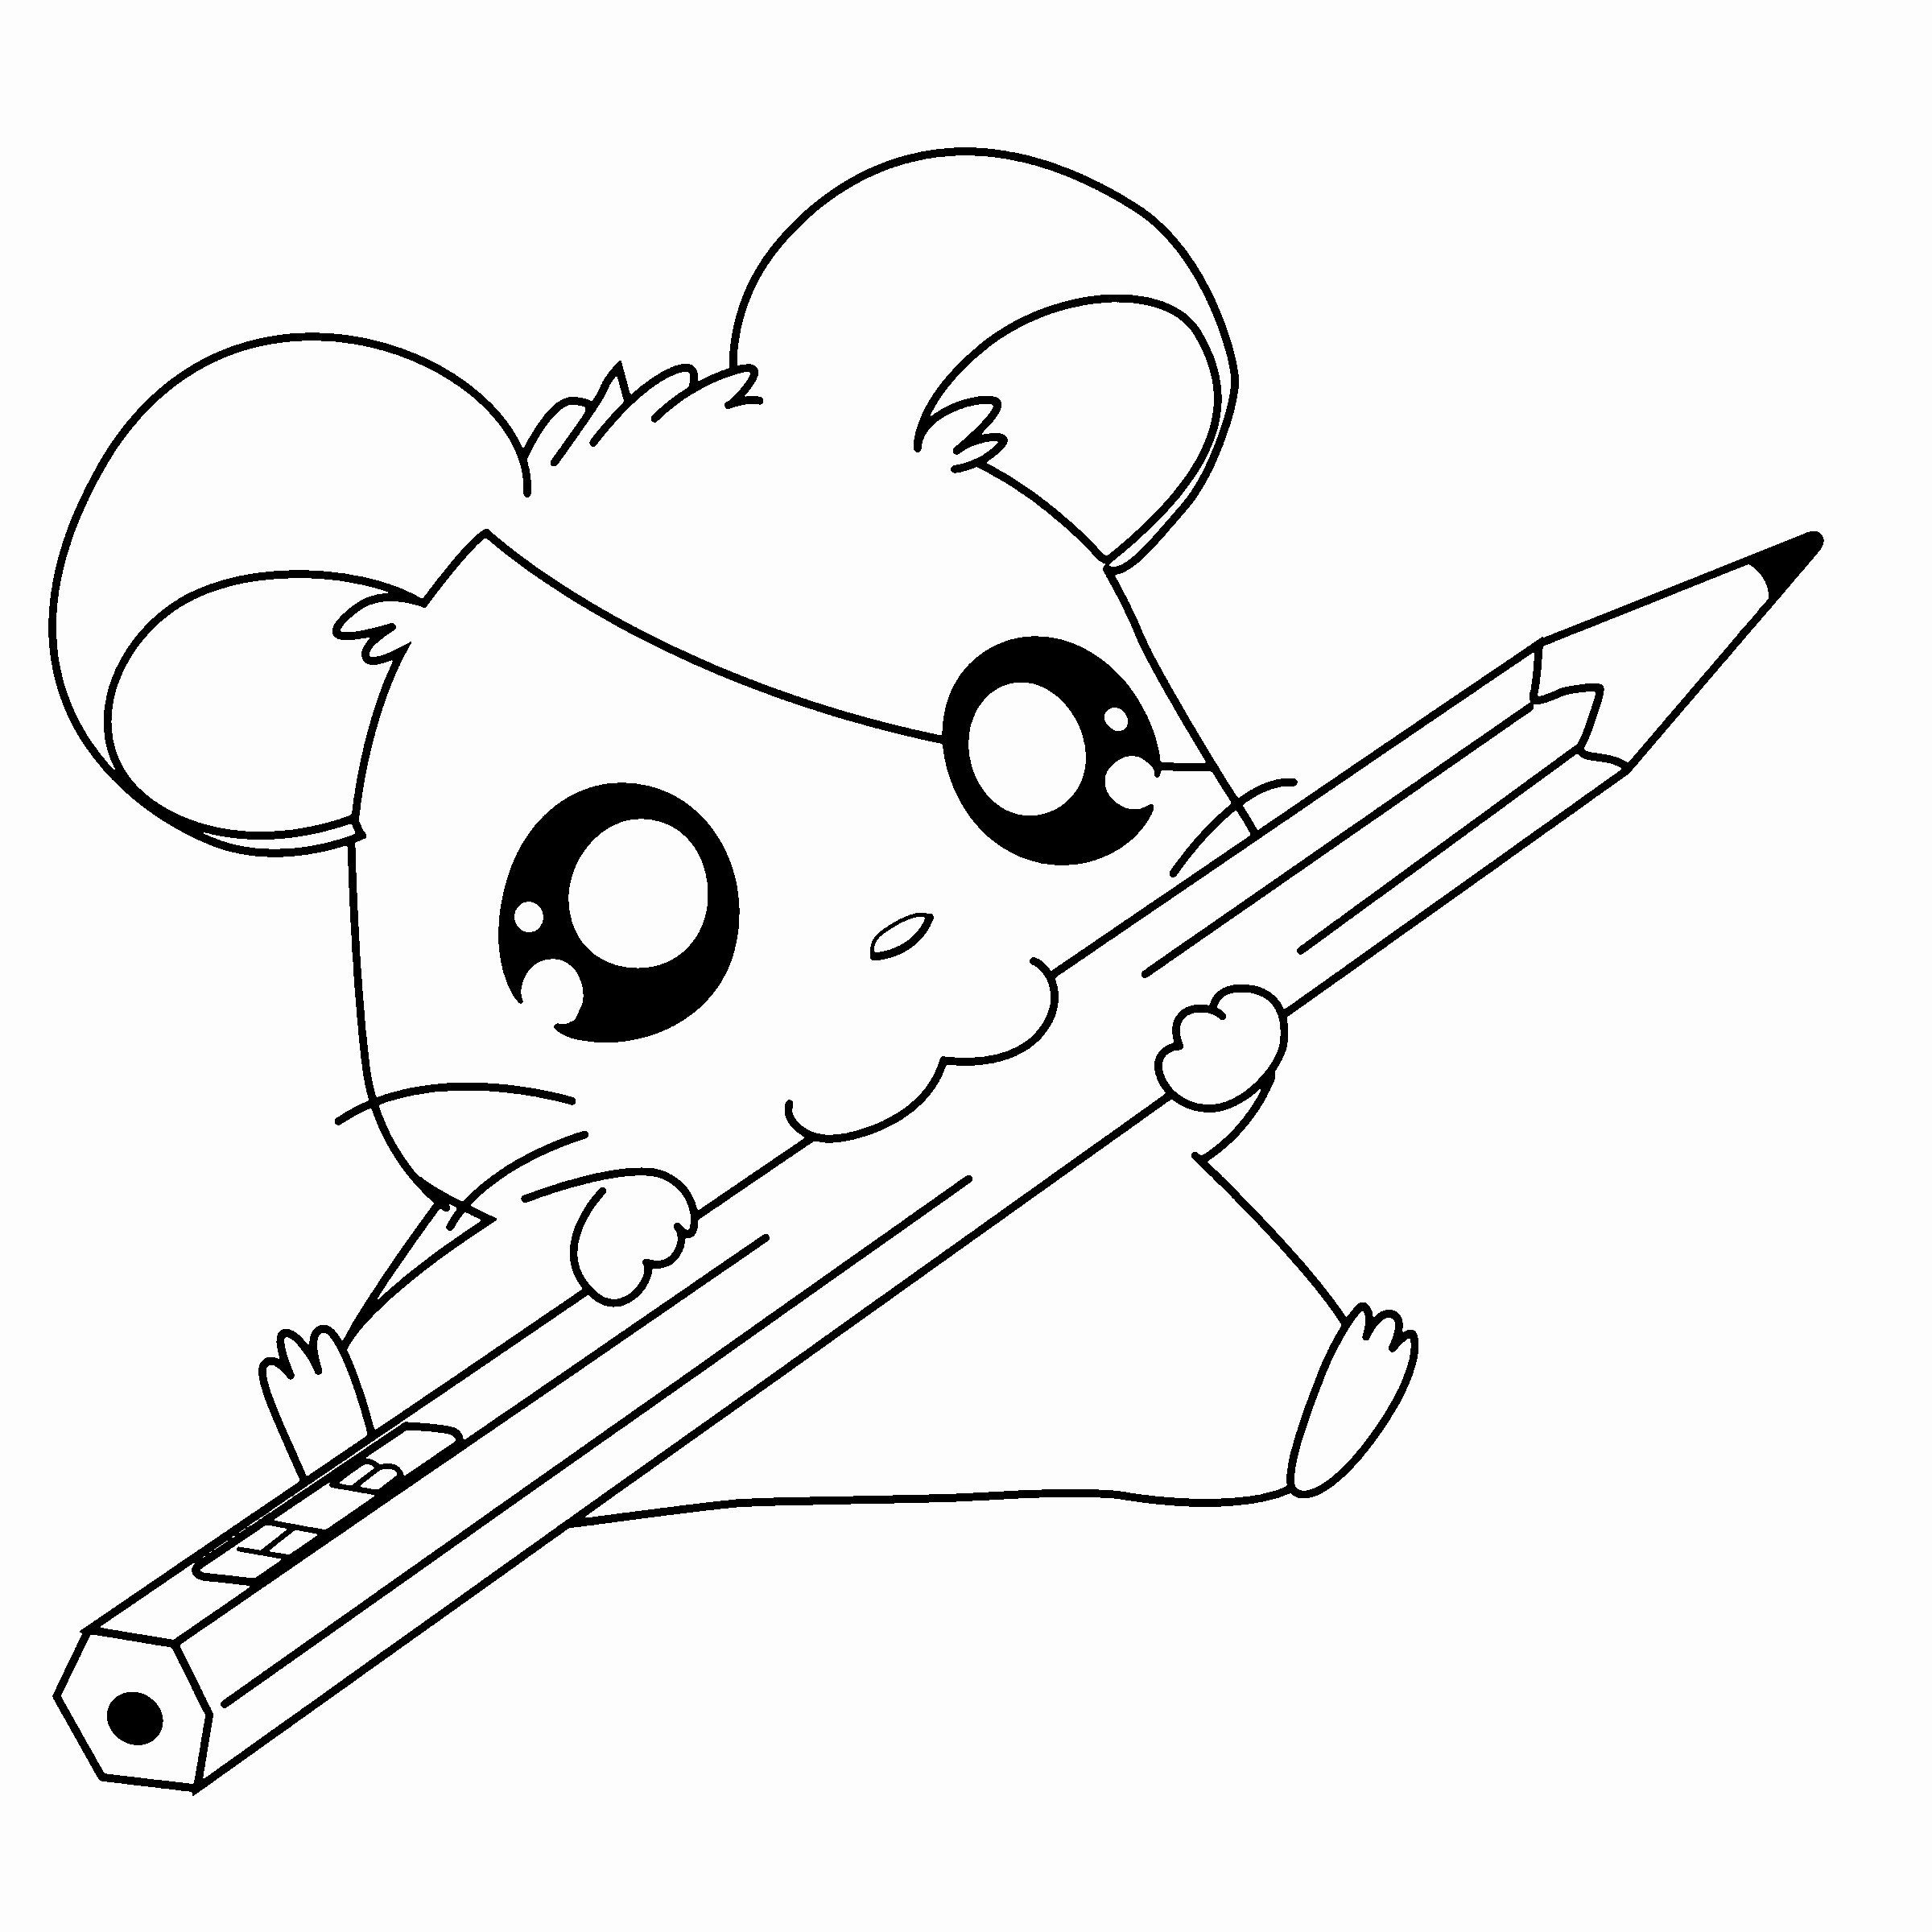 Kawaii Narwhal Coloring Pages New Theinn Puppy Coloring Pages